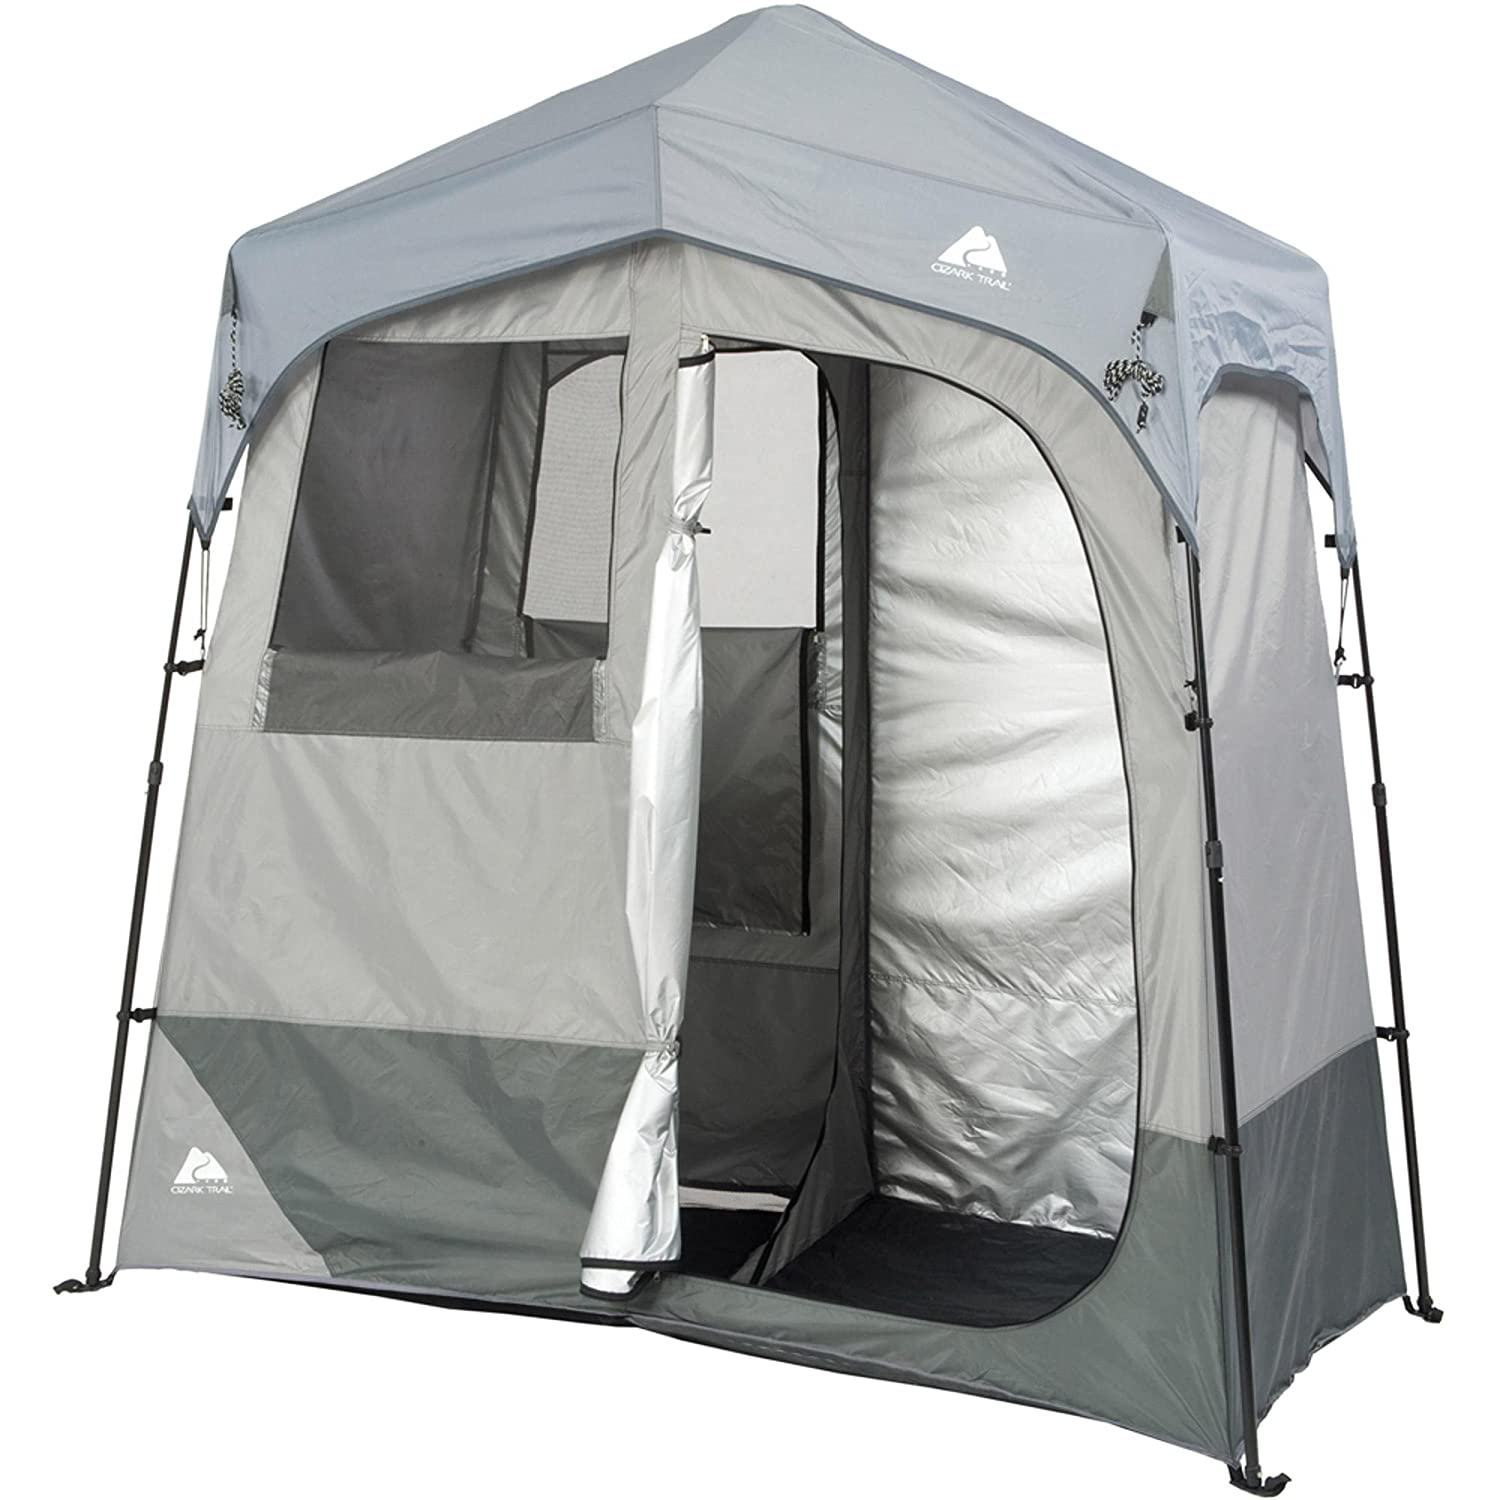 Best Camping Privacy Shower Tents List And Reviews 2016